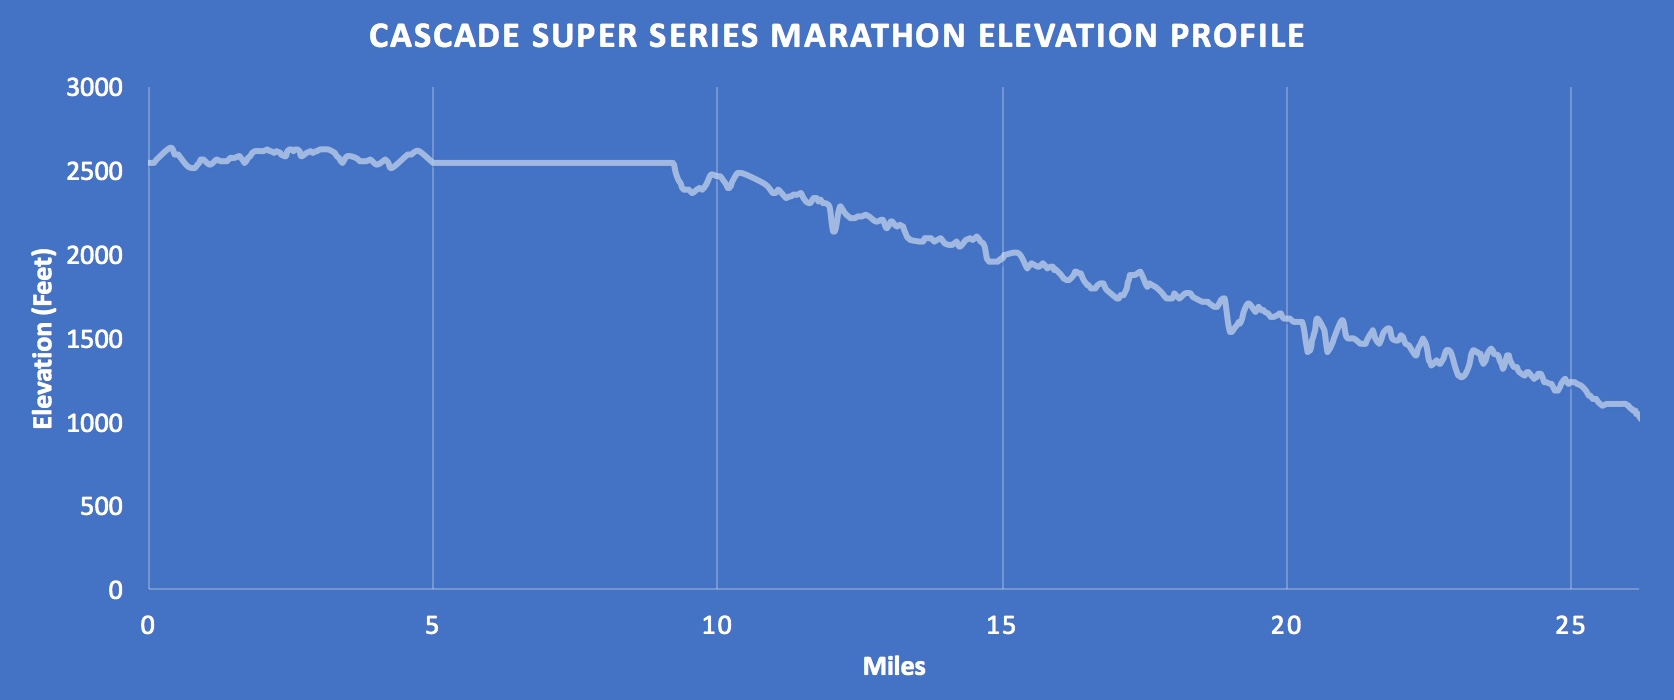 Cascade Super Series Marathon.jpeg